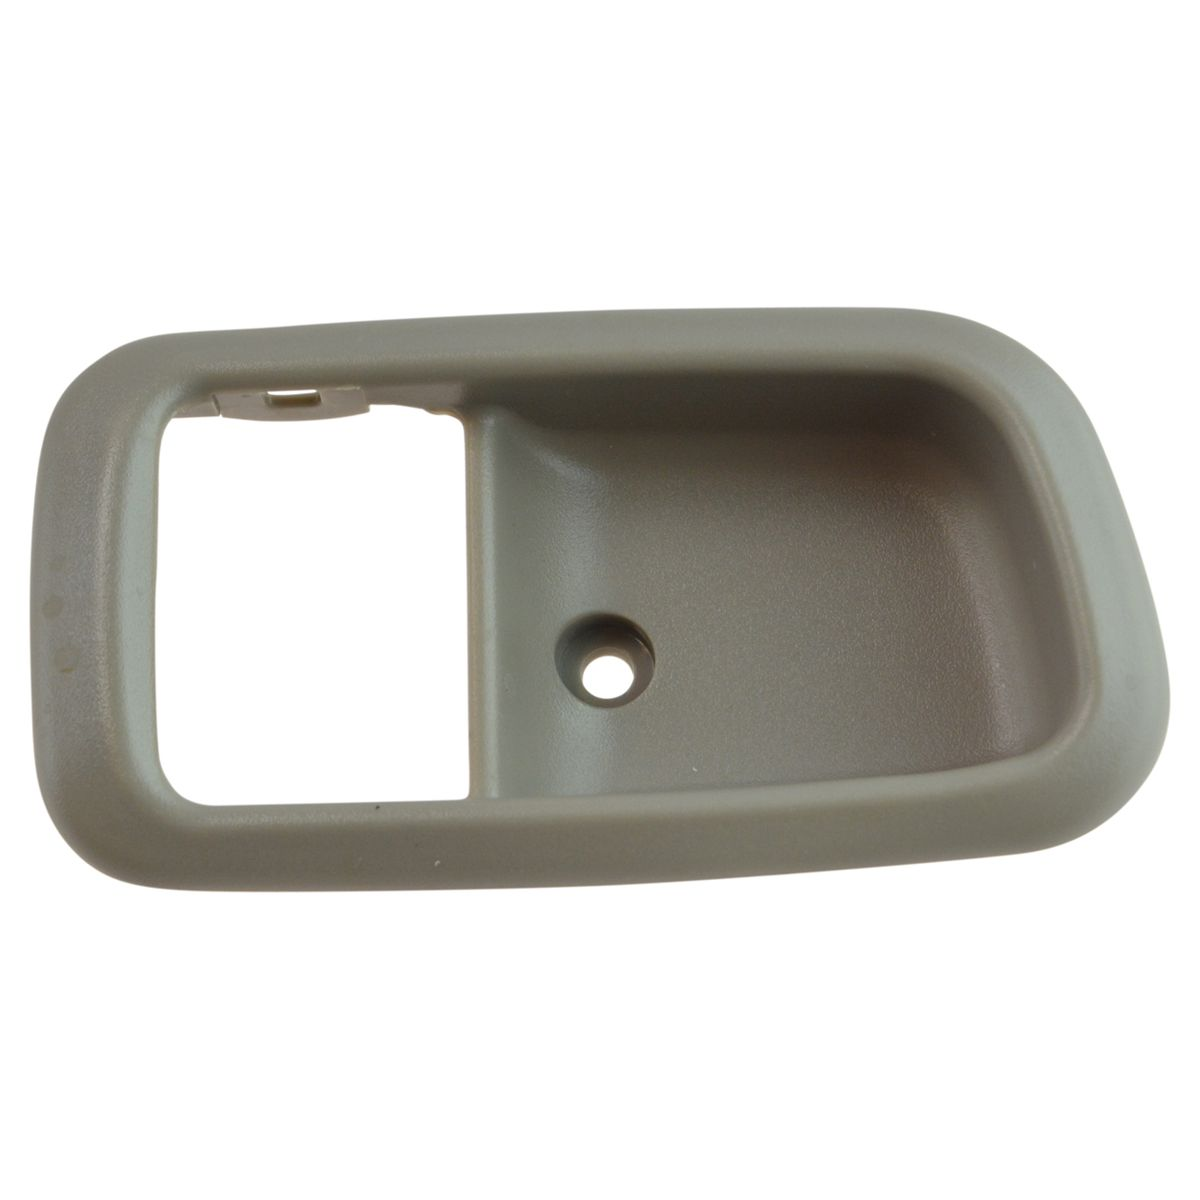 Front Right Inside Interior Door Handle Fits Ext Access Cab Toyota Tundra Reg